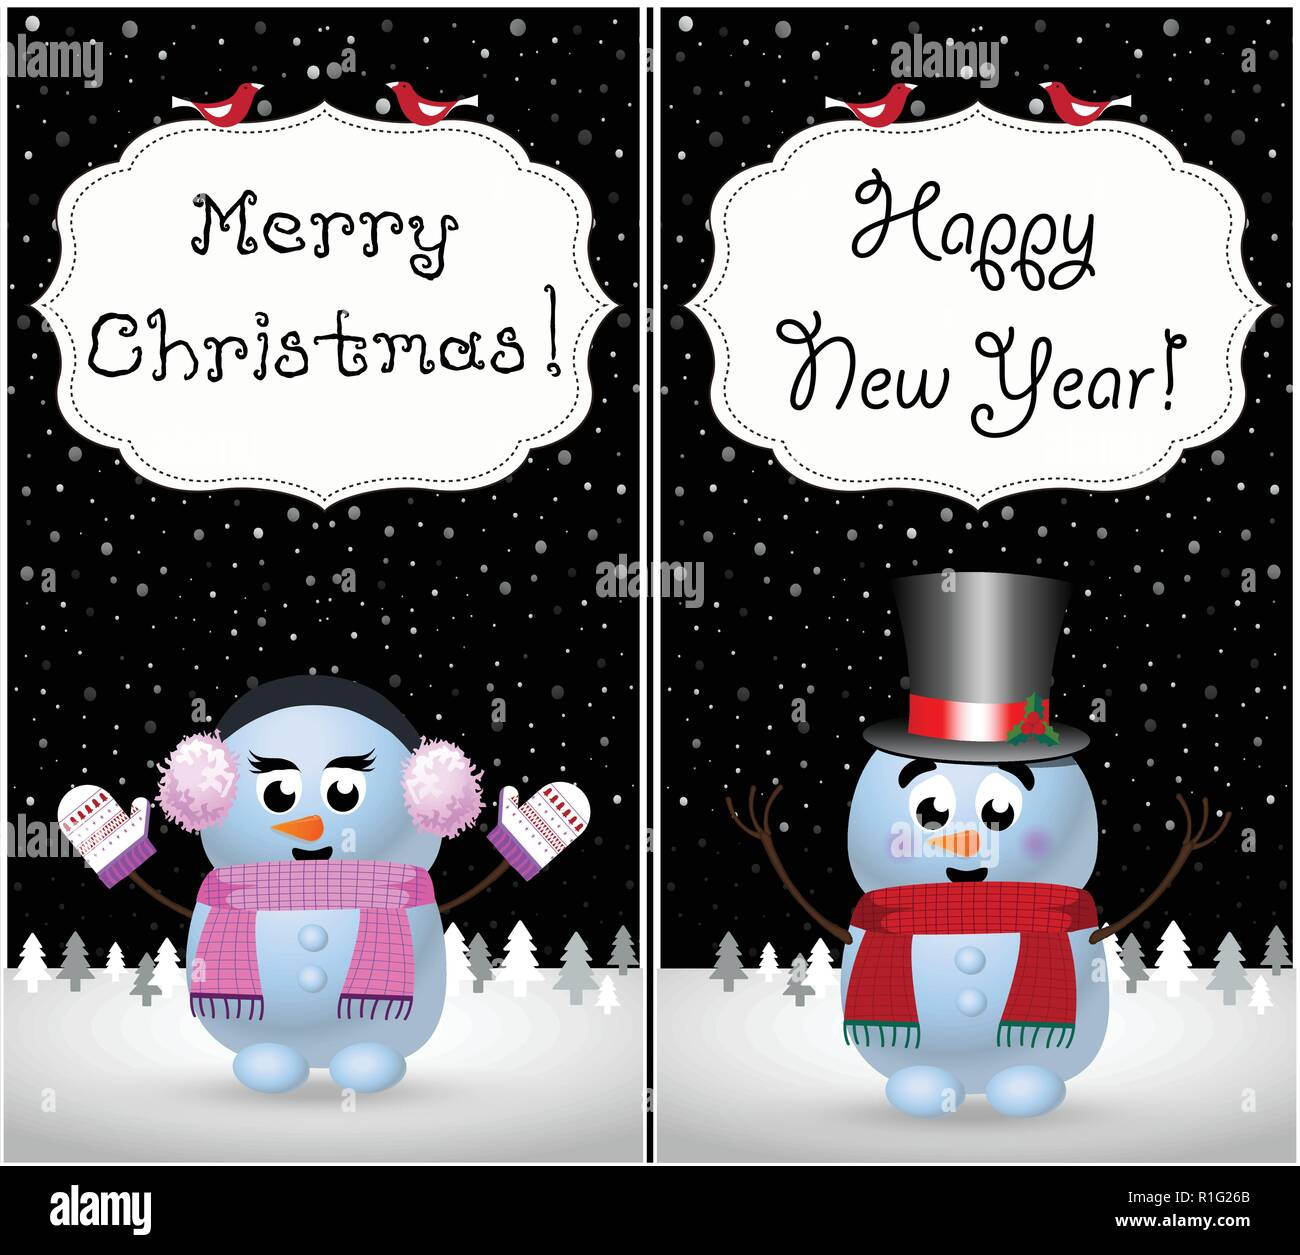 merry christmas happy new year greeting cards set of kawaii little baby snowman and snowgirl on winter snowy night landscape and hand drawn lettering